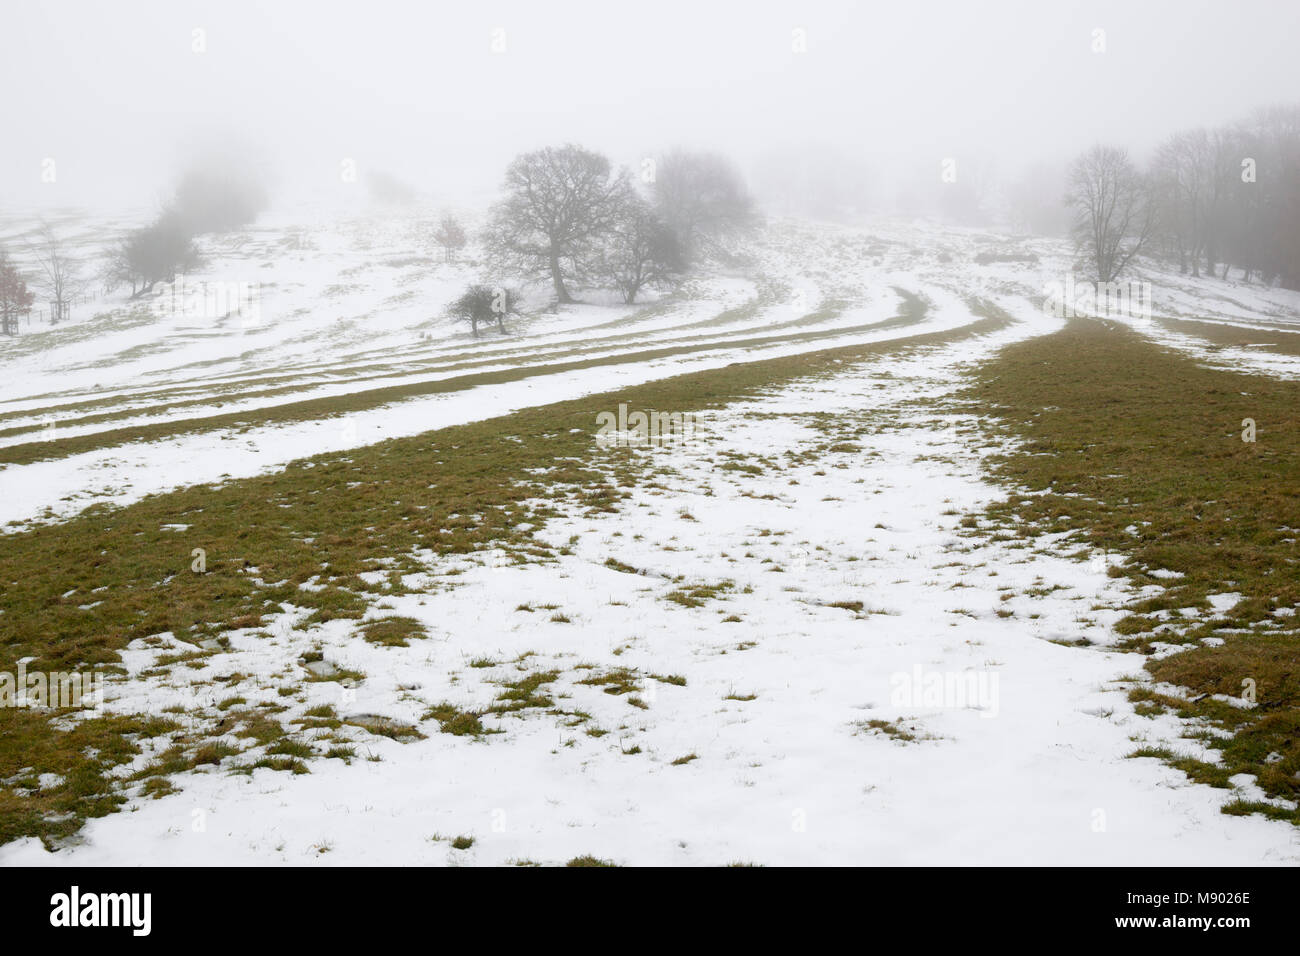 Ridge and furrow medieval field system revealed by melting snow on Dover's Hill, Chipping Campden, Cotswolds, - Stock Image